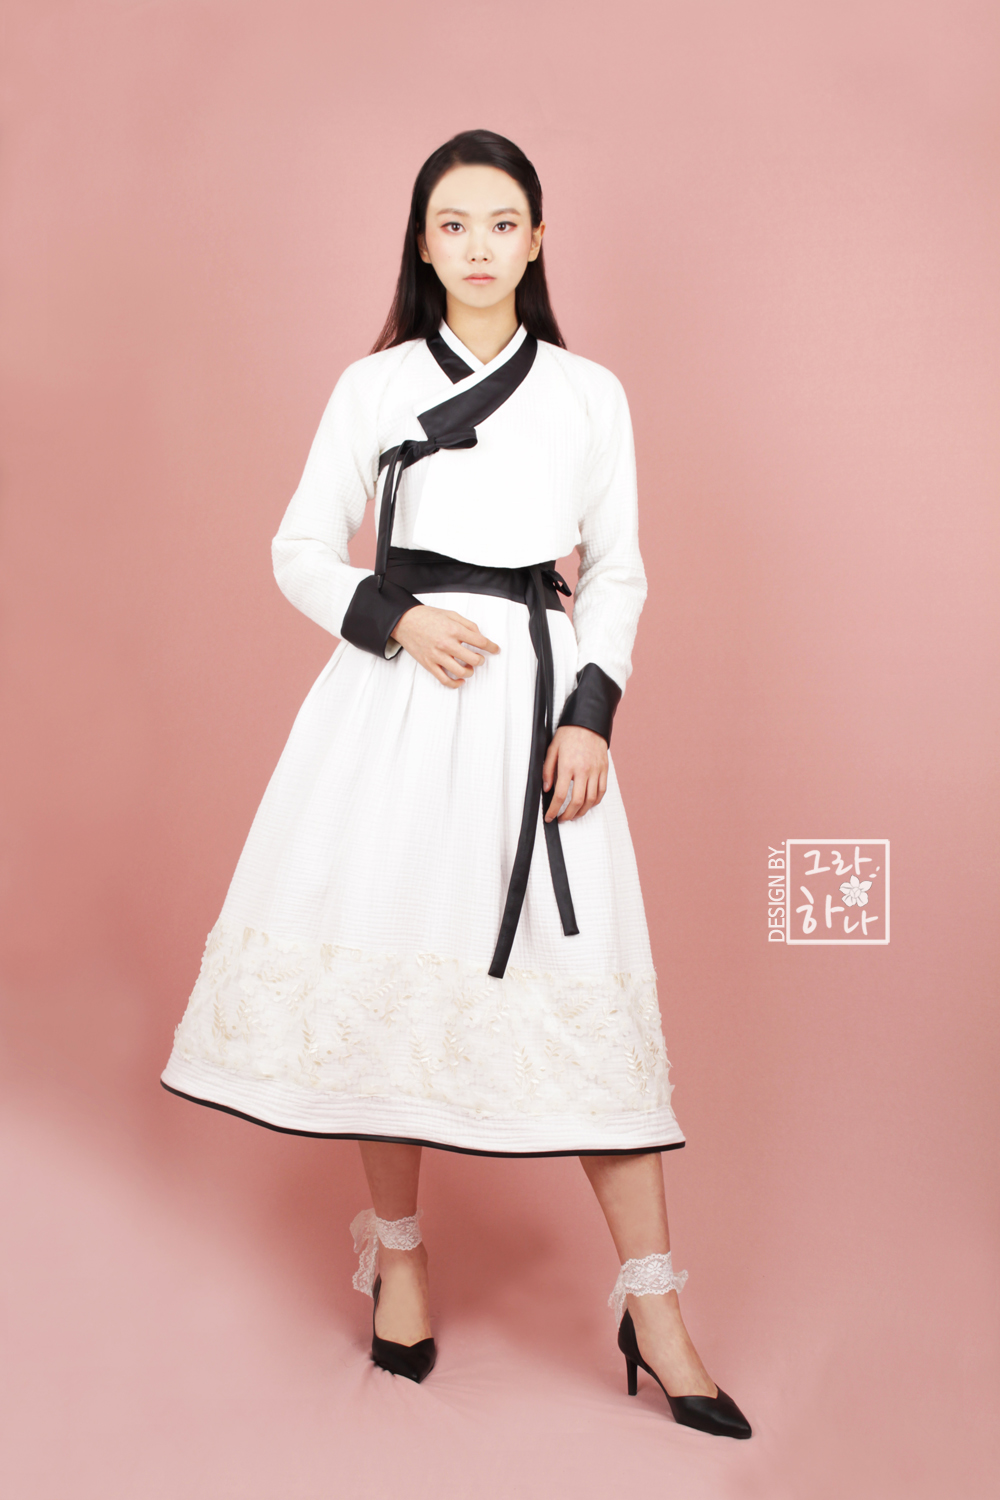 Korean fashion designer Hyunsook Park adds a modern twist to the traditional Korean wedding dress. Her ready-to-wear designs can be worn anywhere.